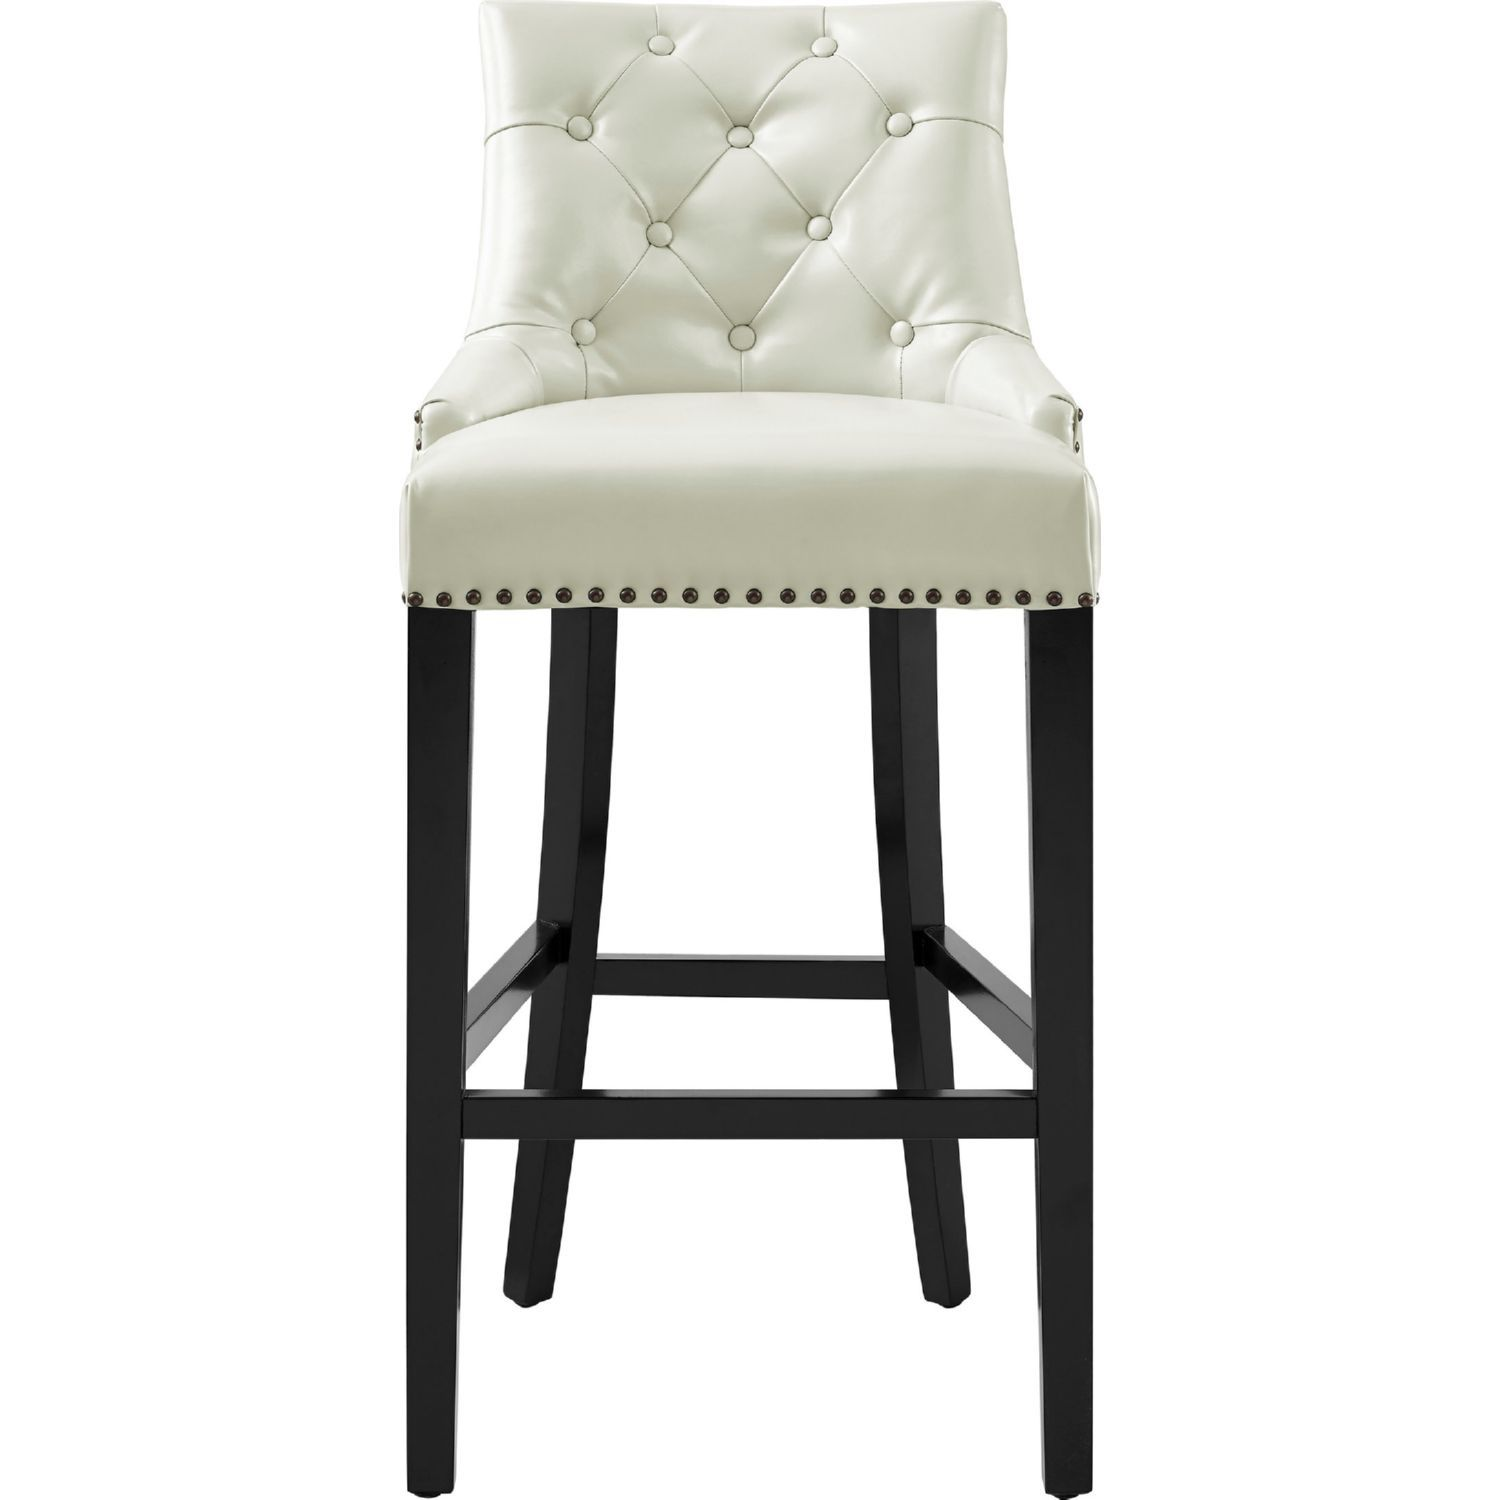 20 cream colored bar stools elite modern furniture check more at http